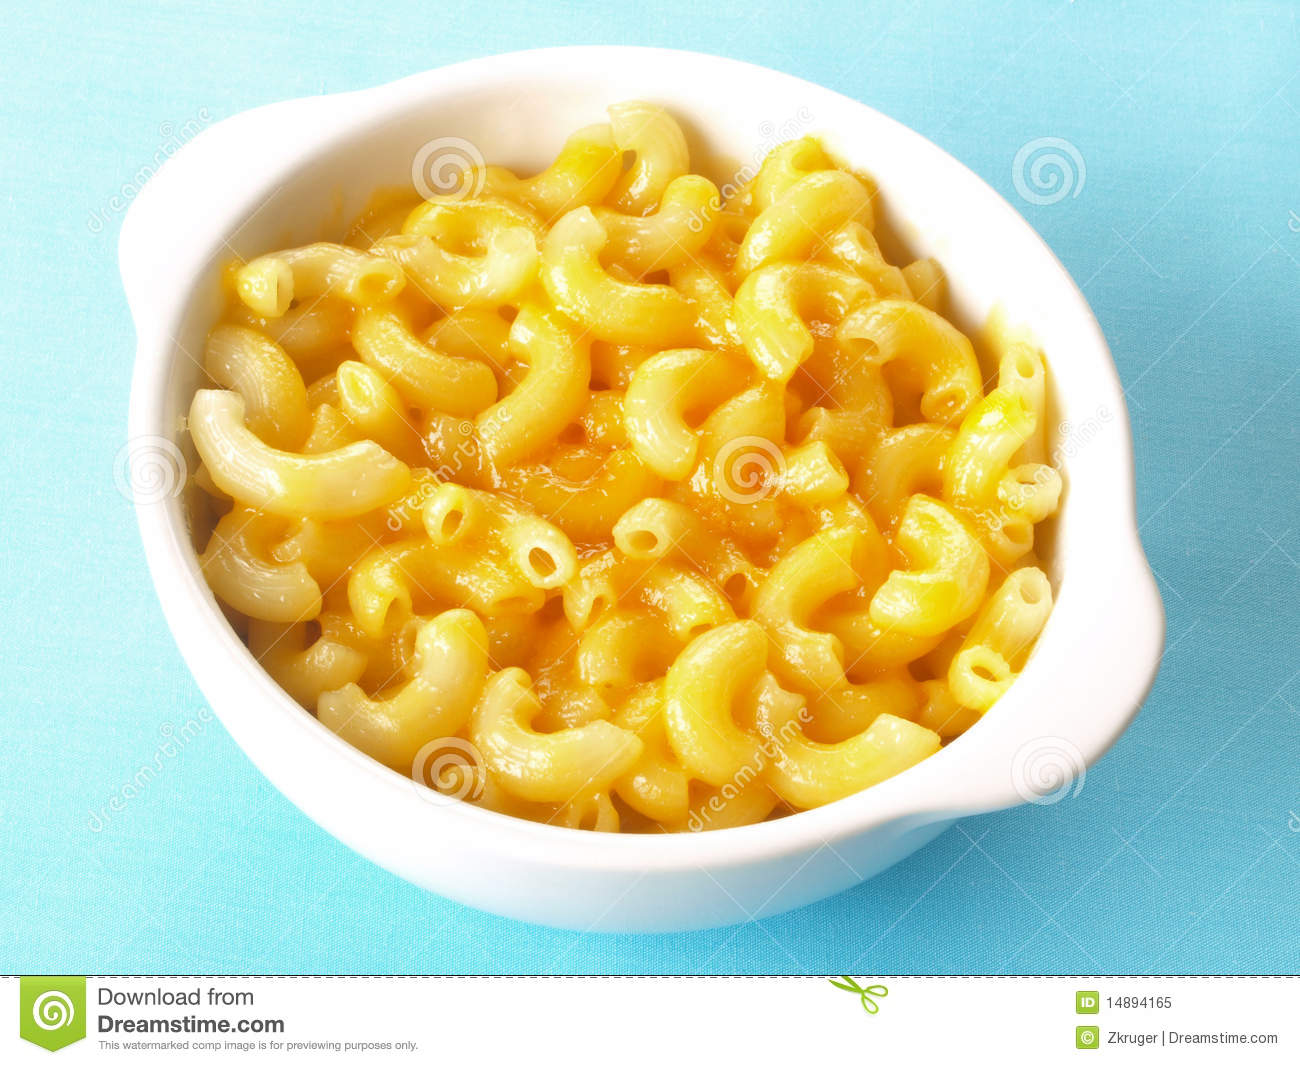 Macaroni And Cheese Royalty Free Stock Photo - Image: 14894165